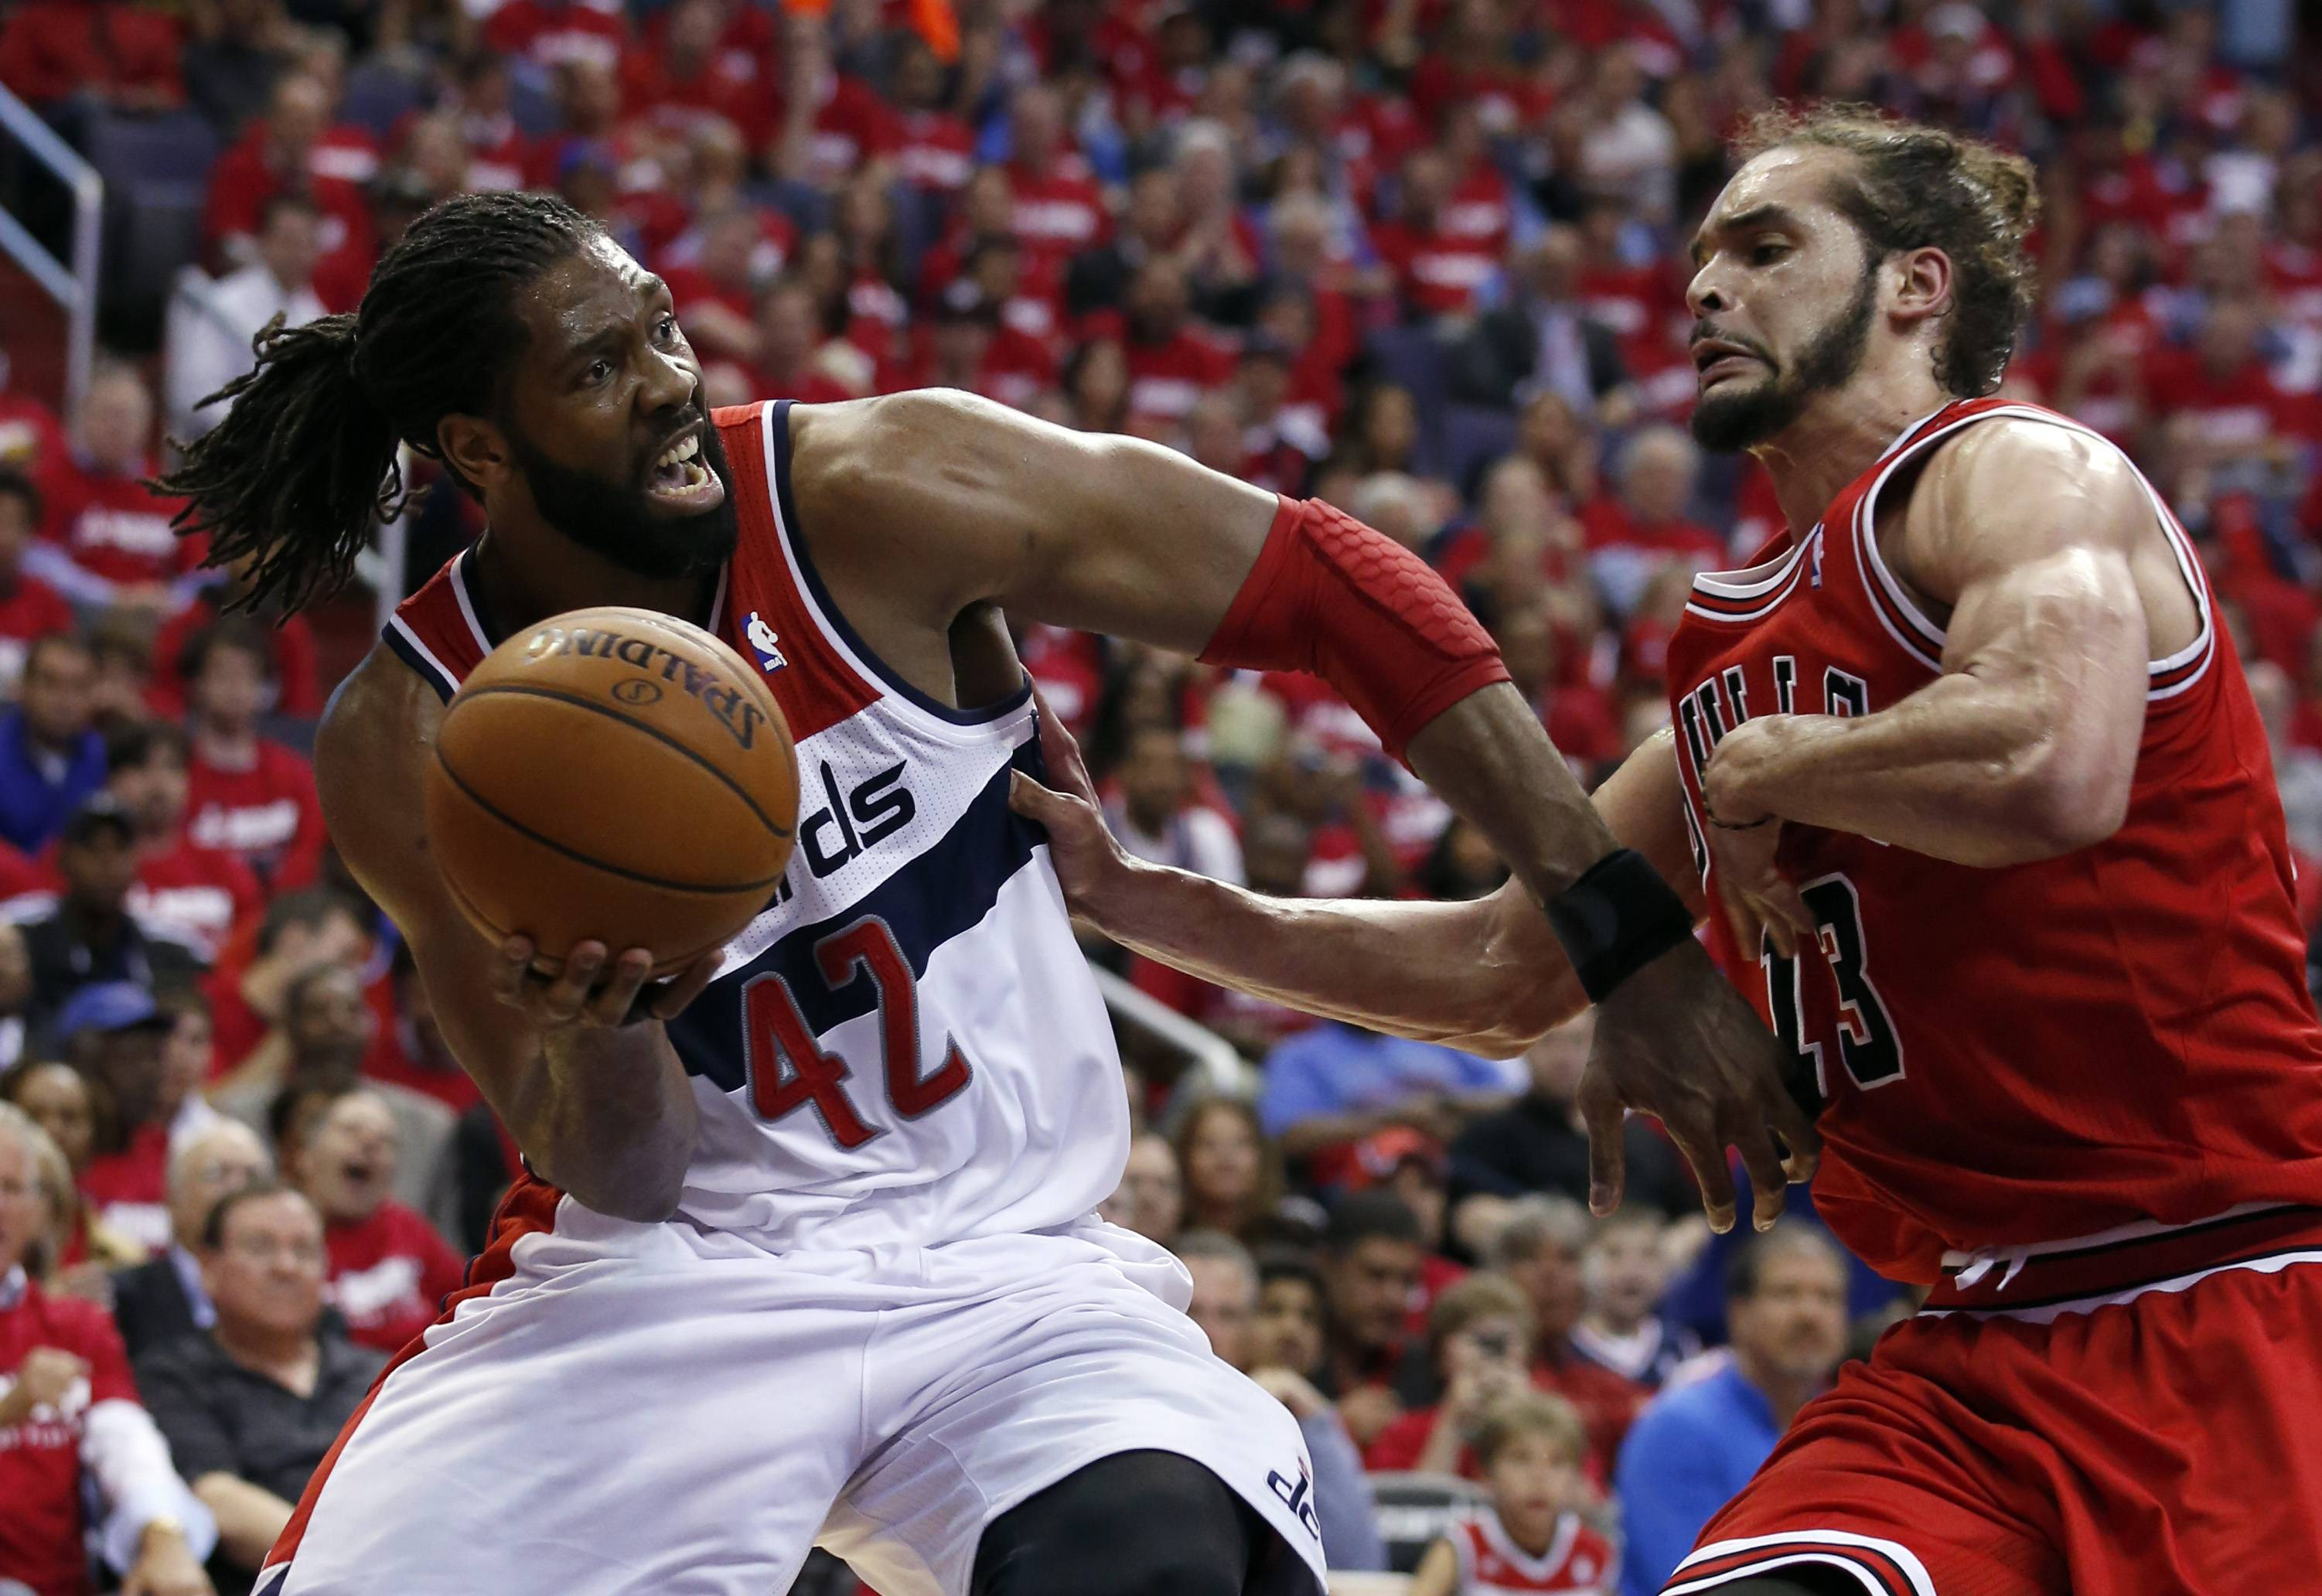 Washington Wizards forward Nene (42), from Brazil, looks to pass as Chicago Bulls center Joakim Noah (13) defends in the second half of Game 3 of an opening-round NBA basketball playoff series, Friday, April 25, 2014, in Washington. The Bulls won 100-97.